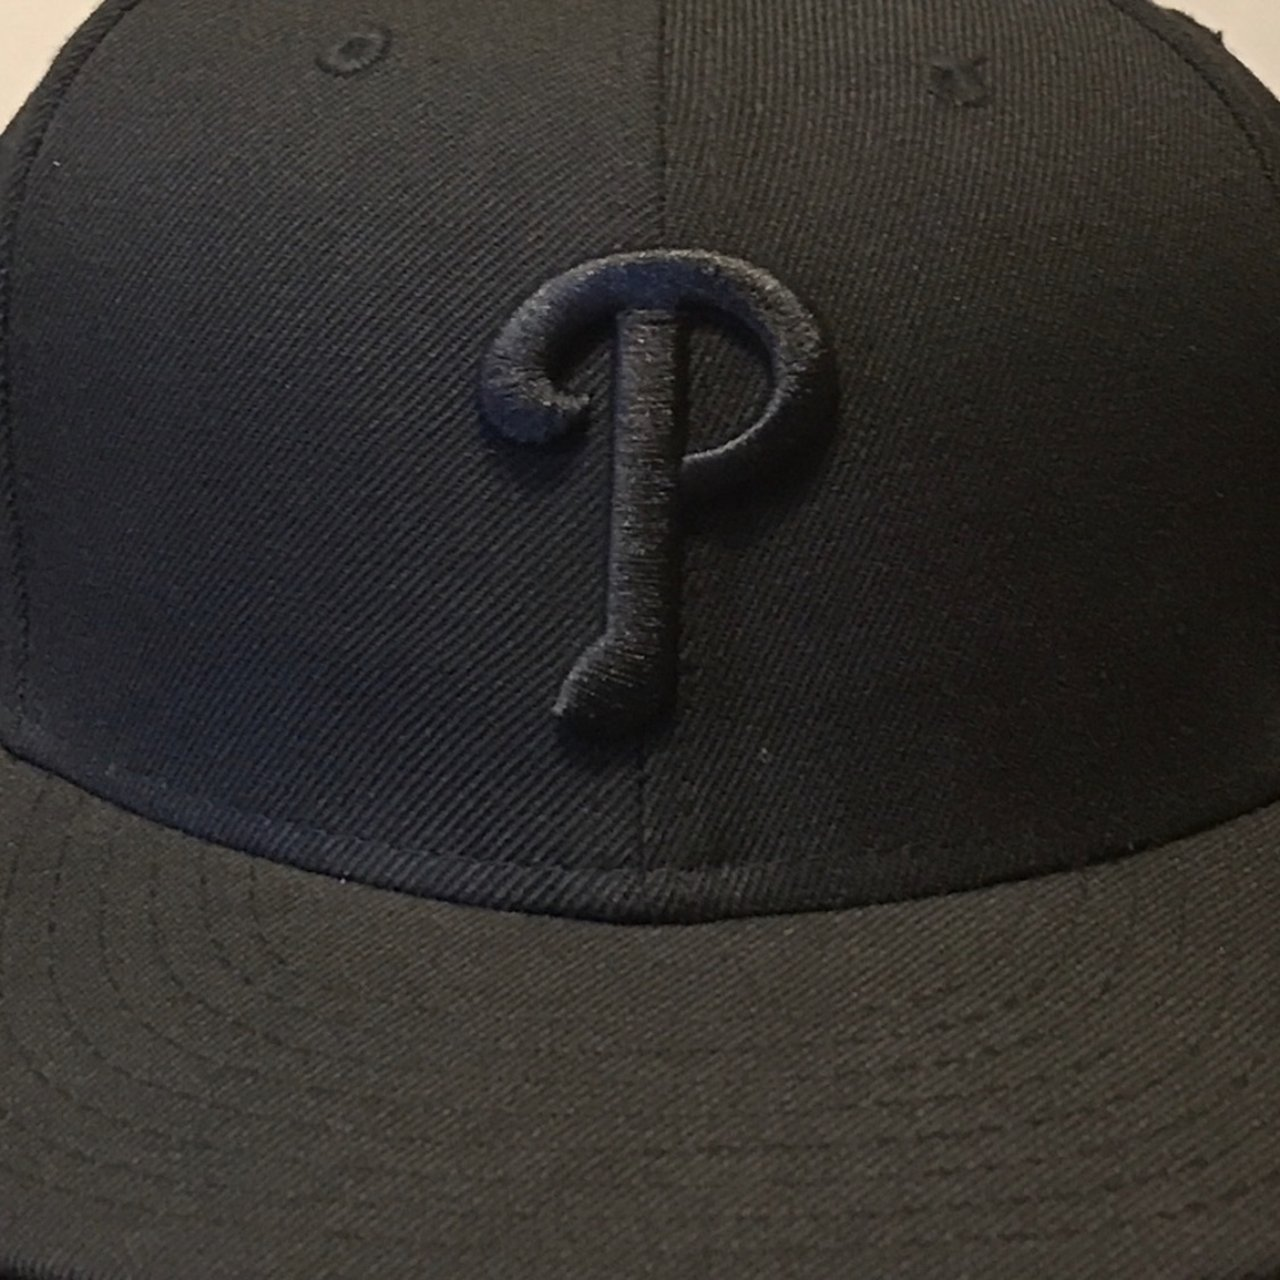 98a53d29886  alfofashionco. 3 months ago. United States. New Era Black Fitted Phillies  Baseball Hat.